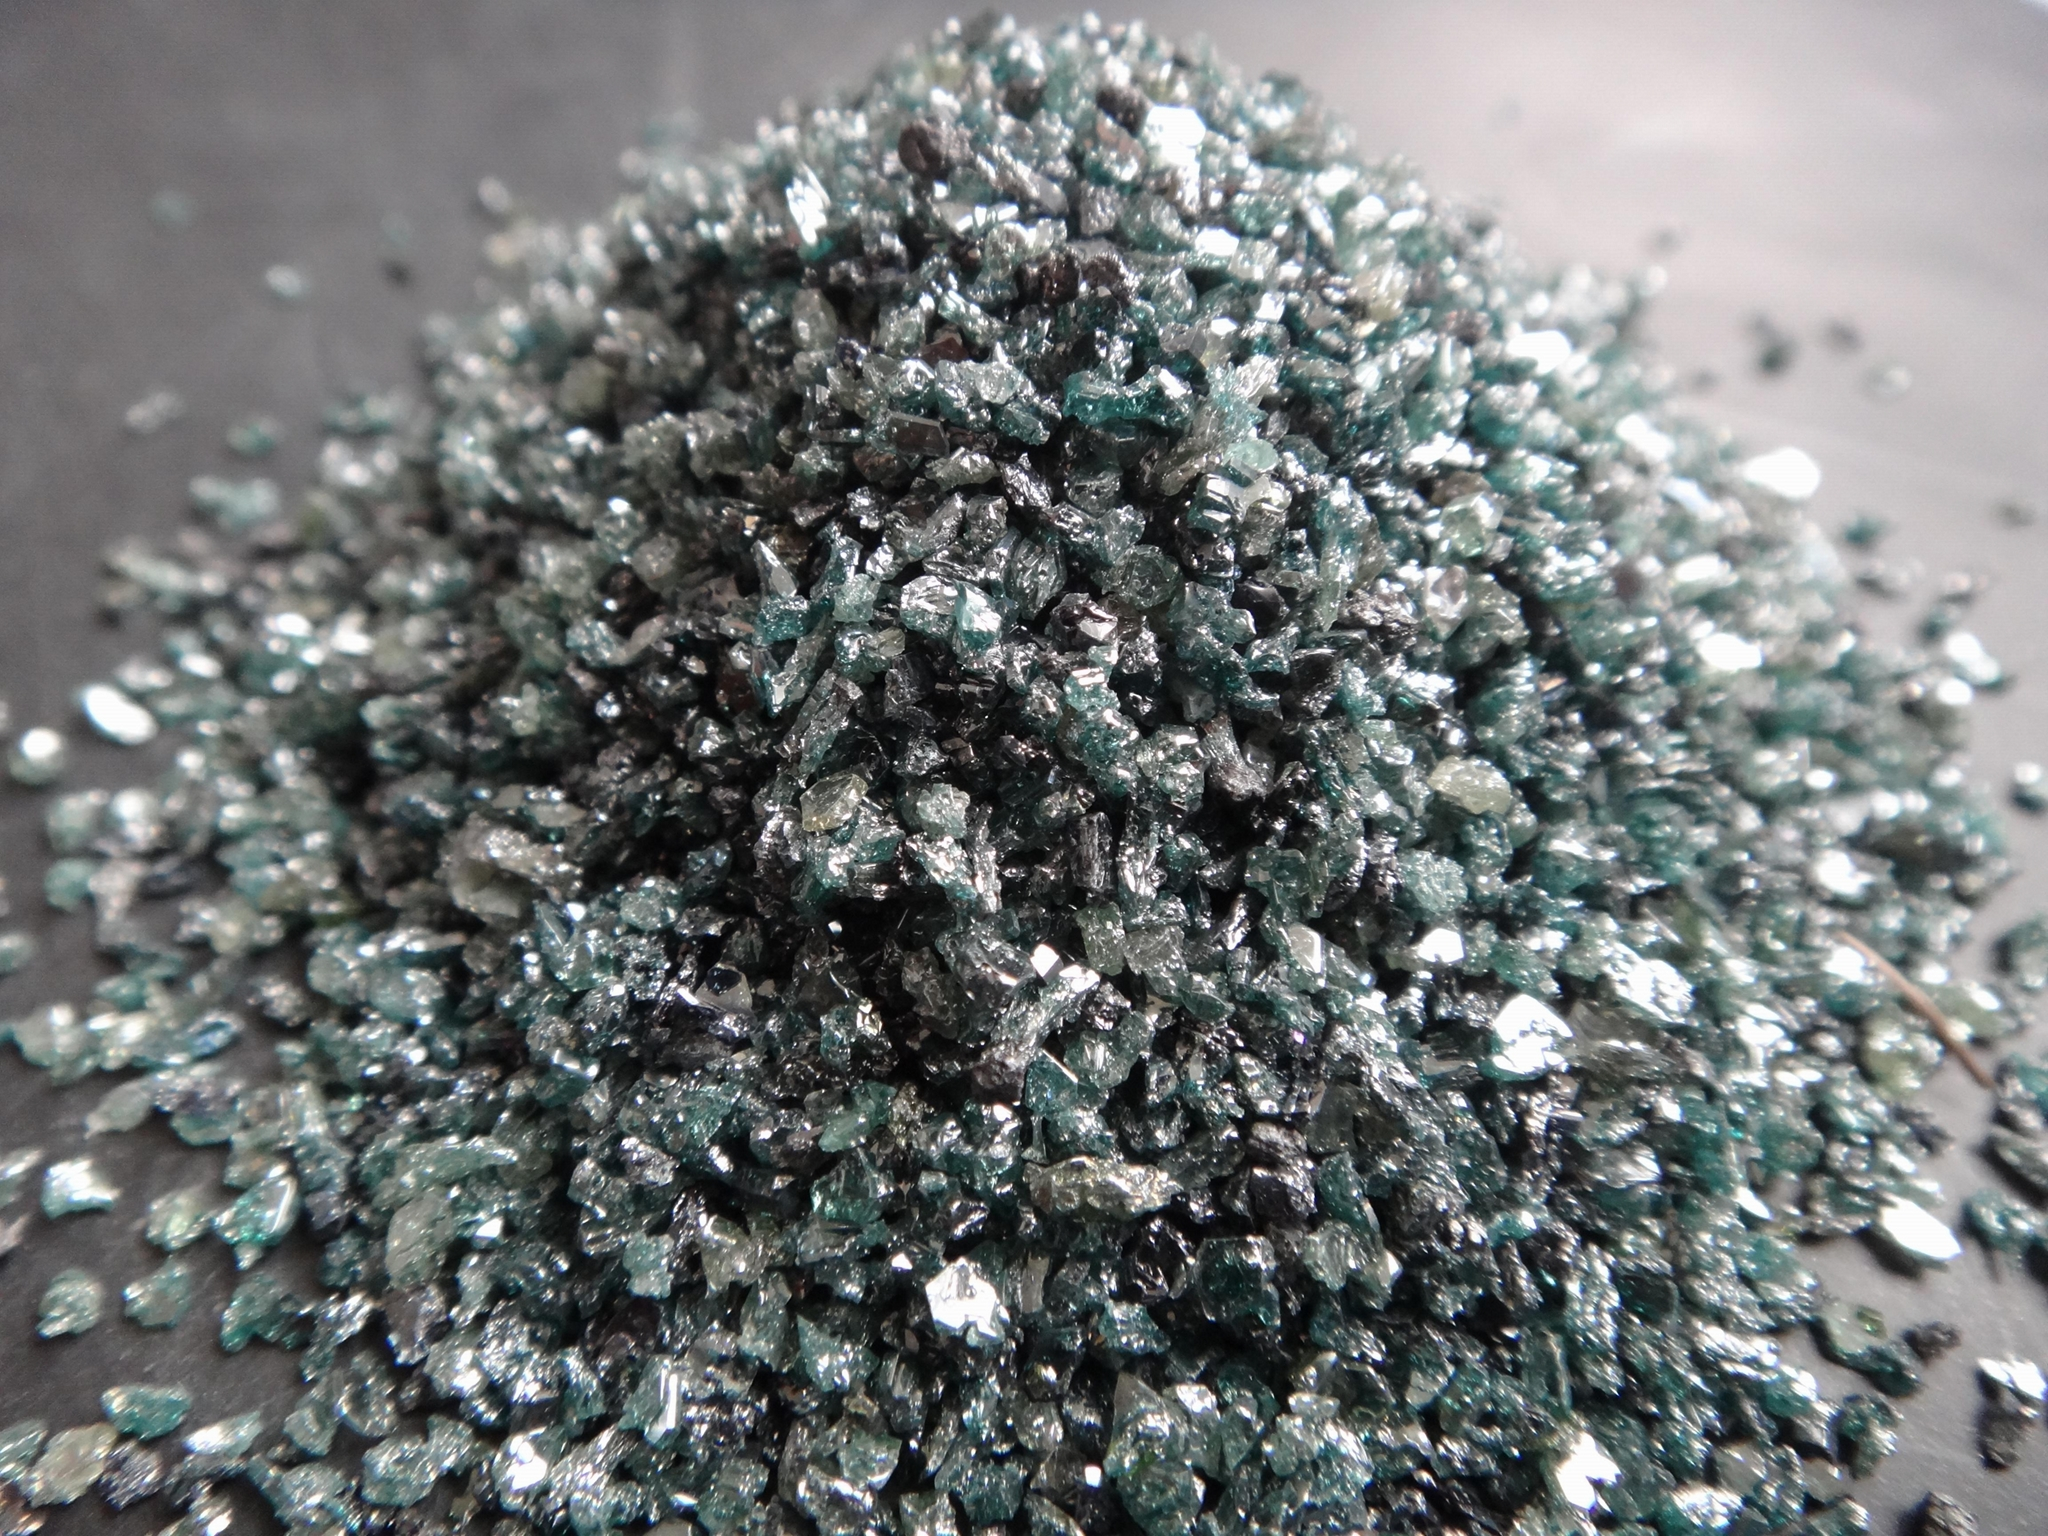 green silicon carbide (refractory, ceramic material) 4